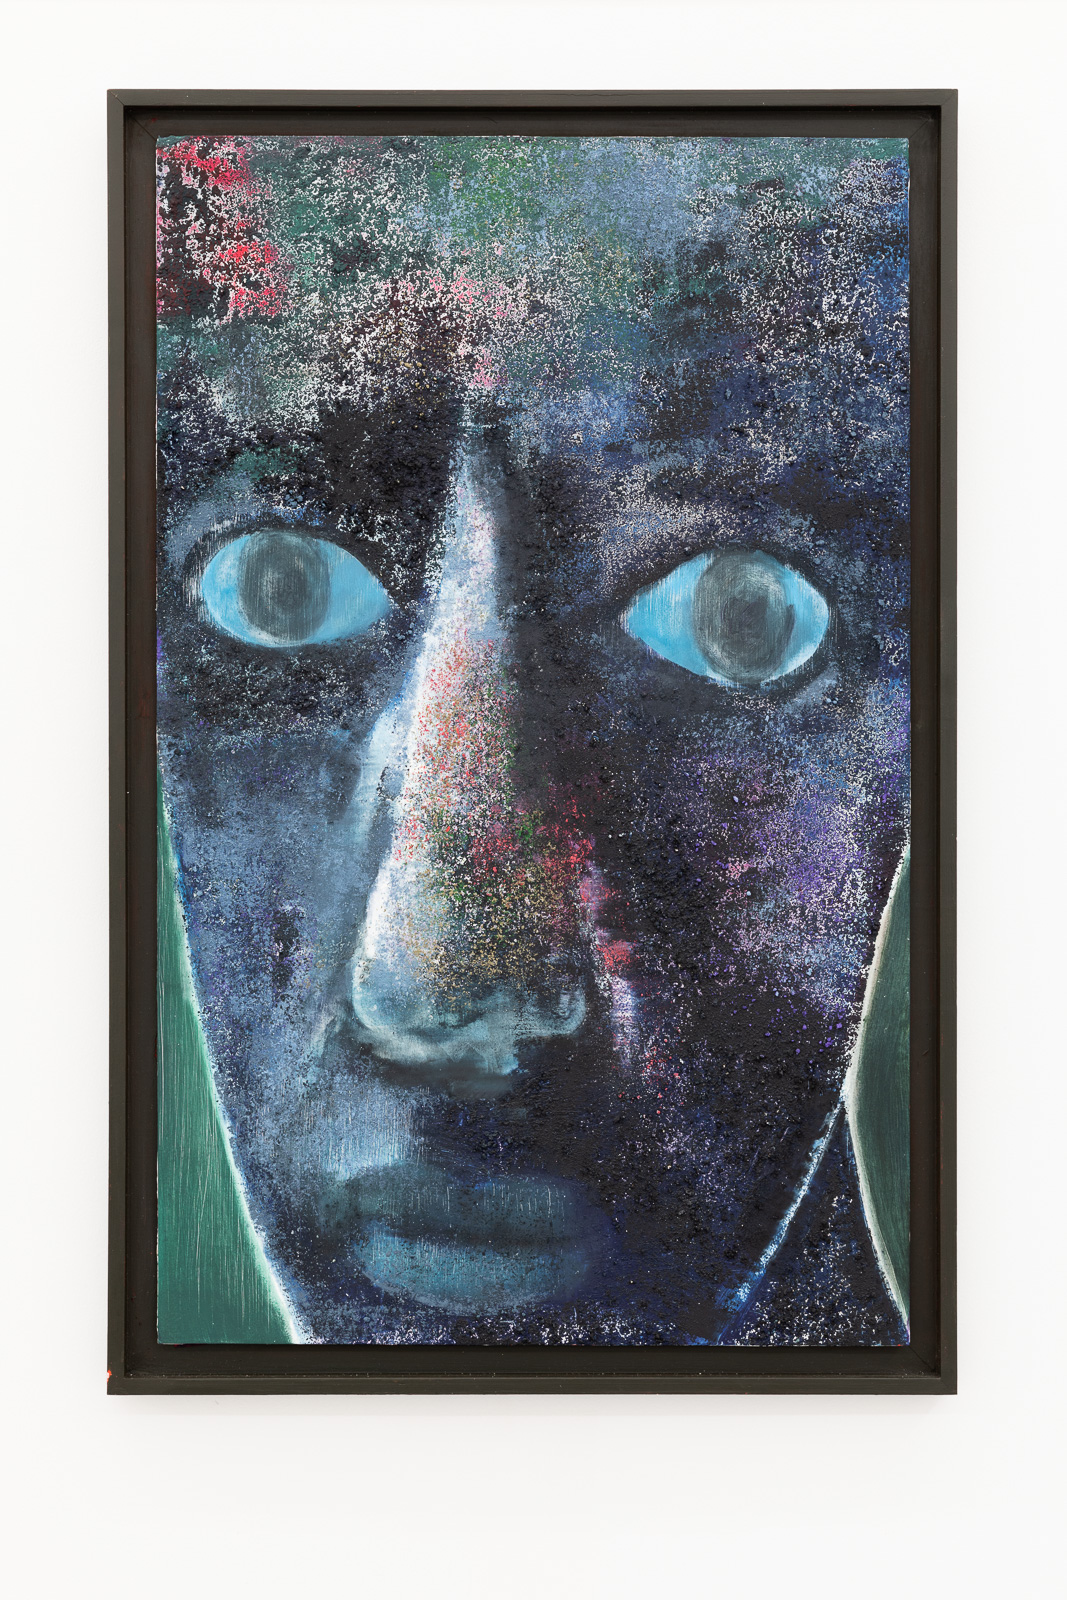 En Ullen Følelse, 2015, Oil, pastel and pumice on dibond panel in unique artist's painted frame, 71 x 46 x 3 cm